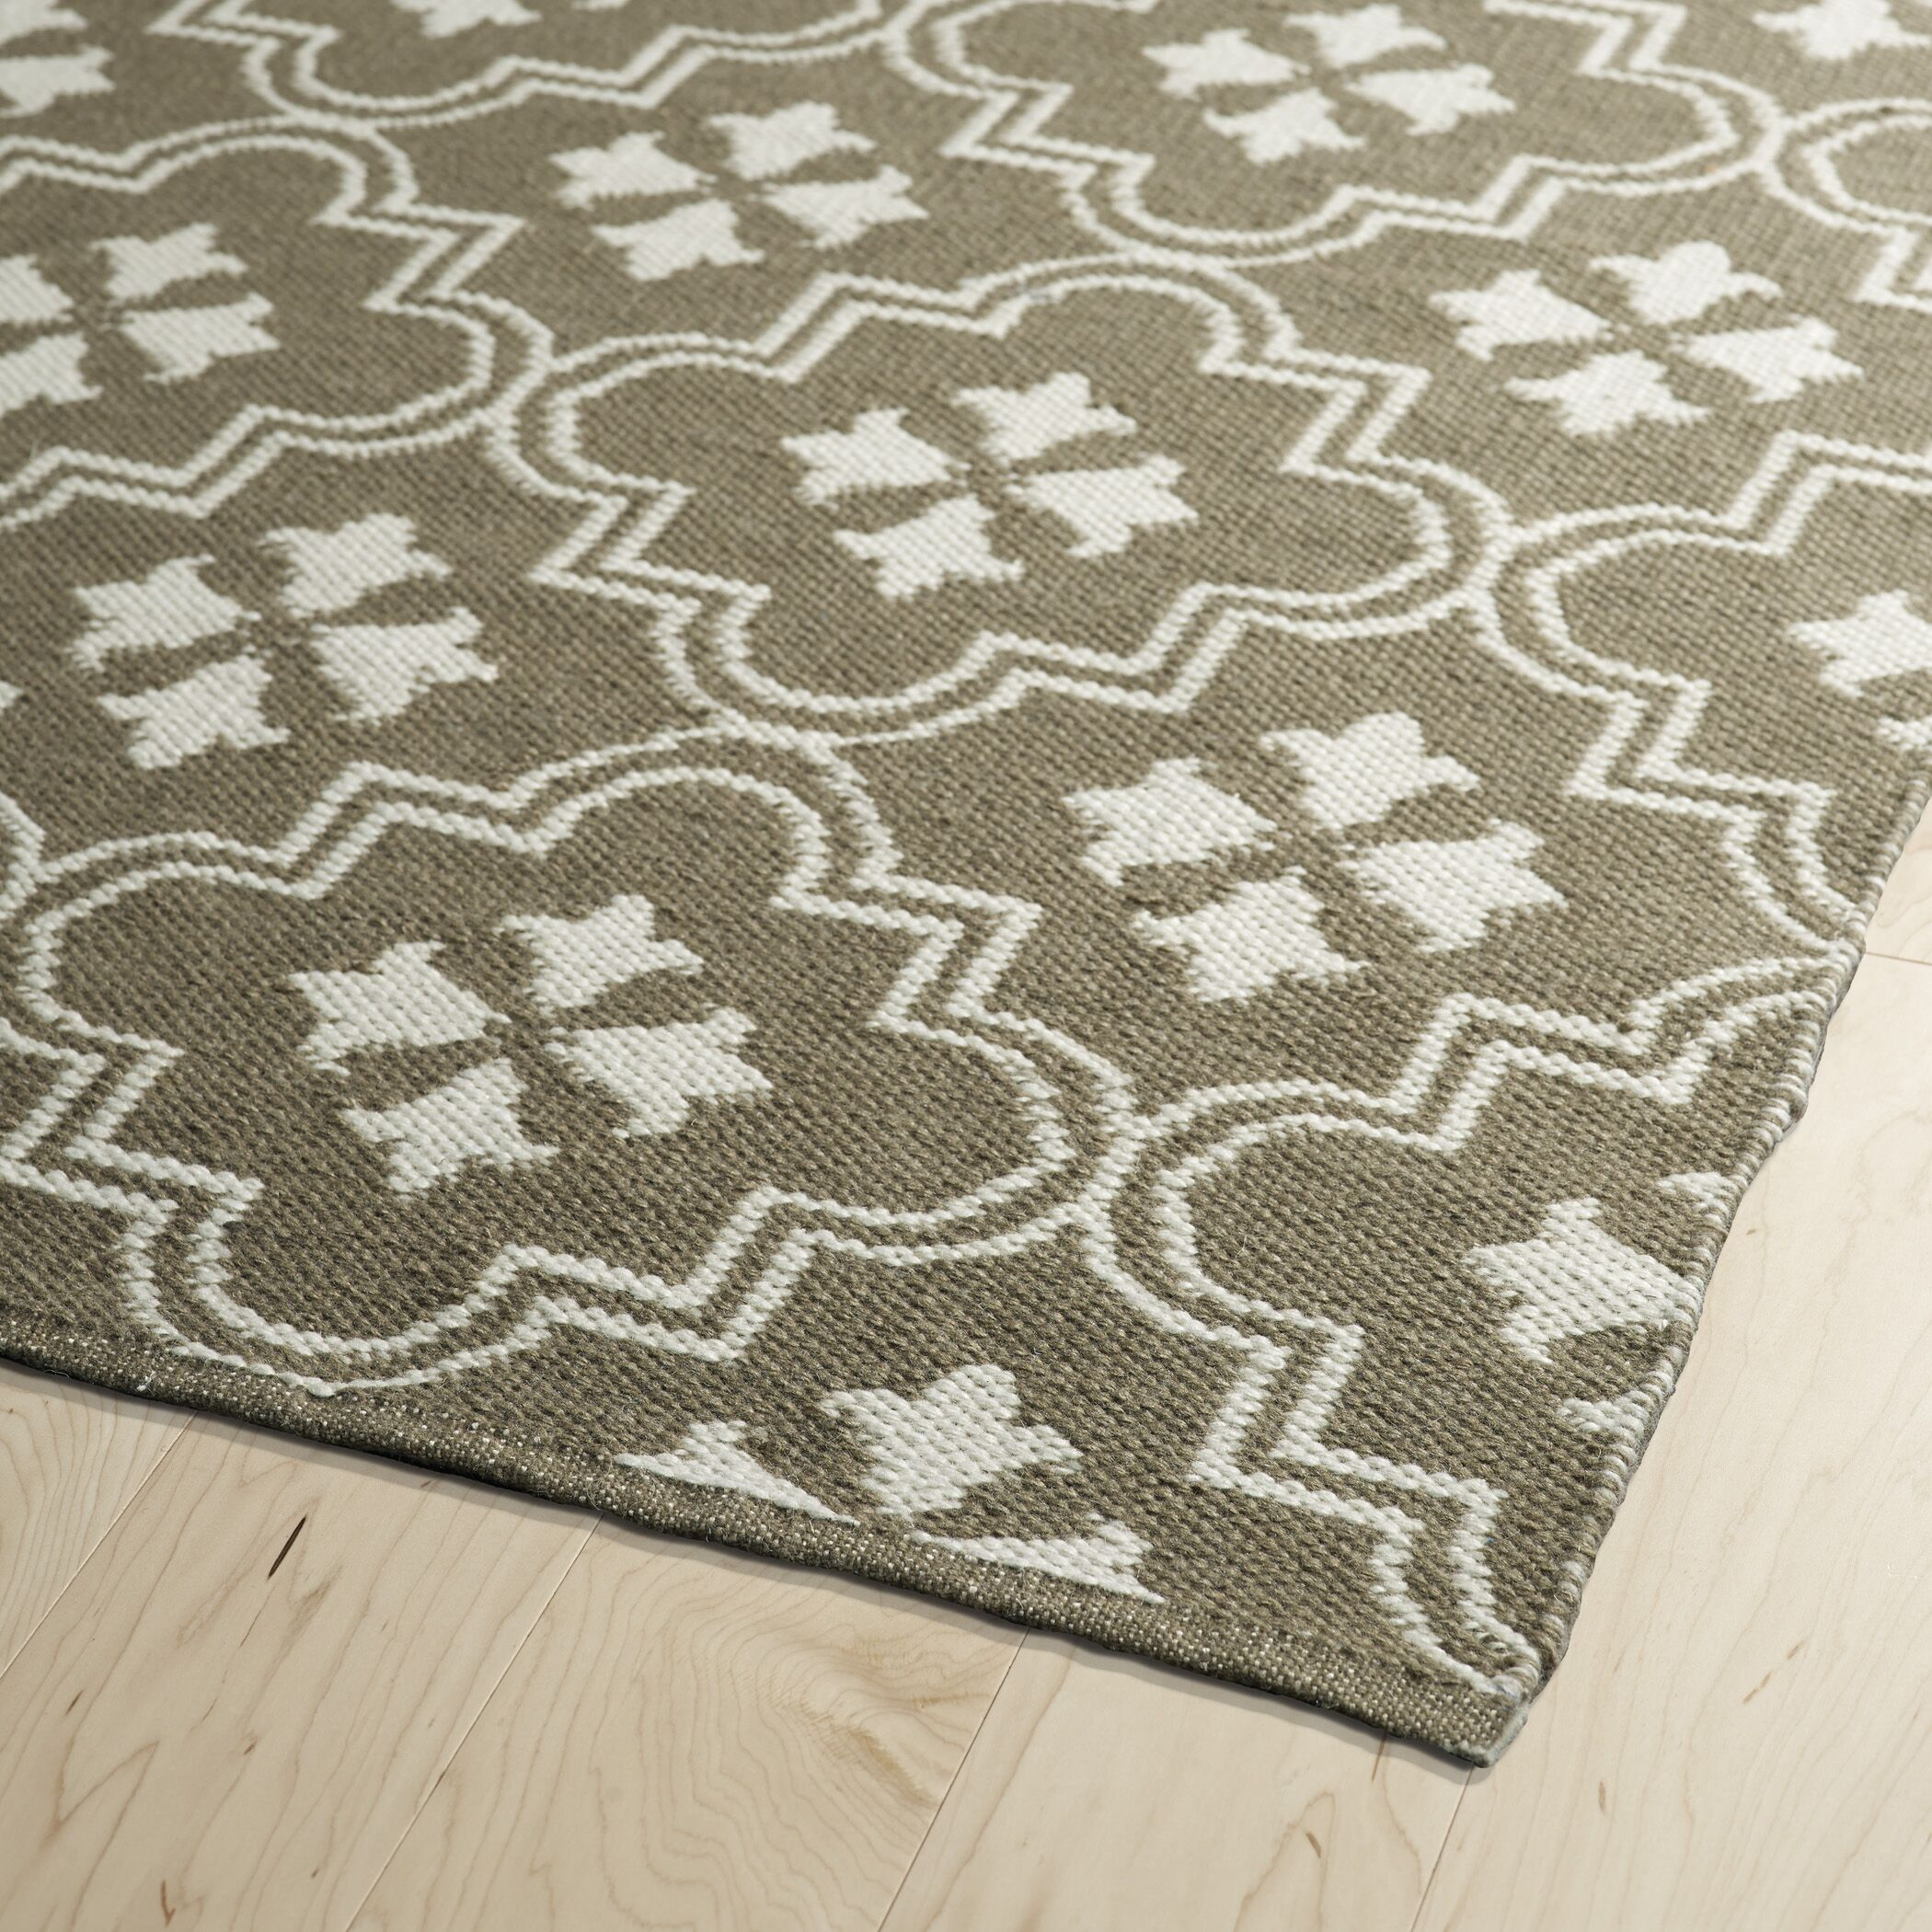 Covington Taupe/Cream Indoor/Outdoor Area Rug Rug Size: Rectangle 8' x 10'